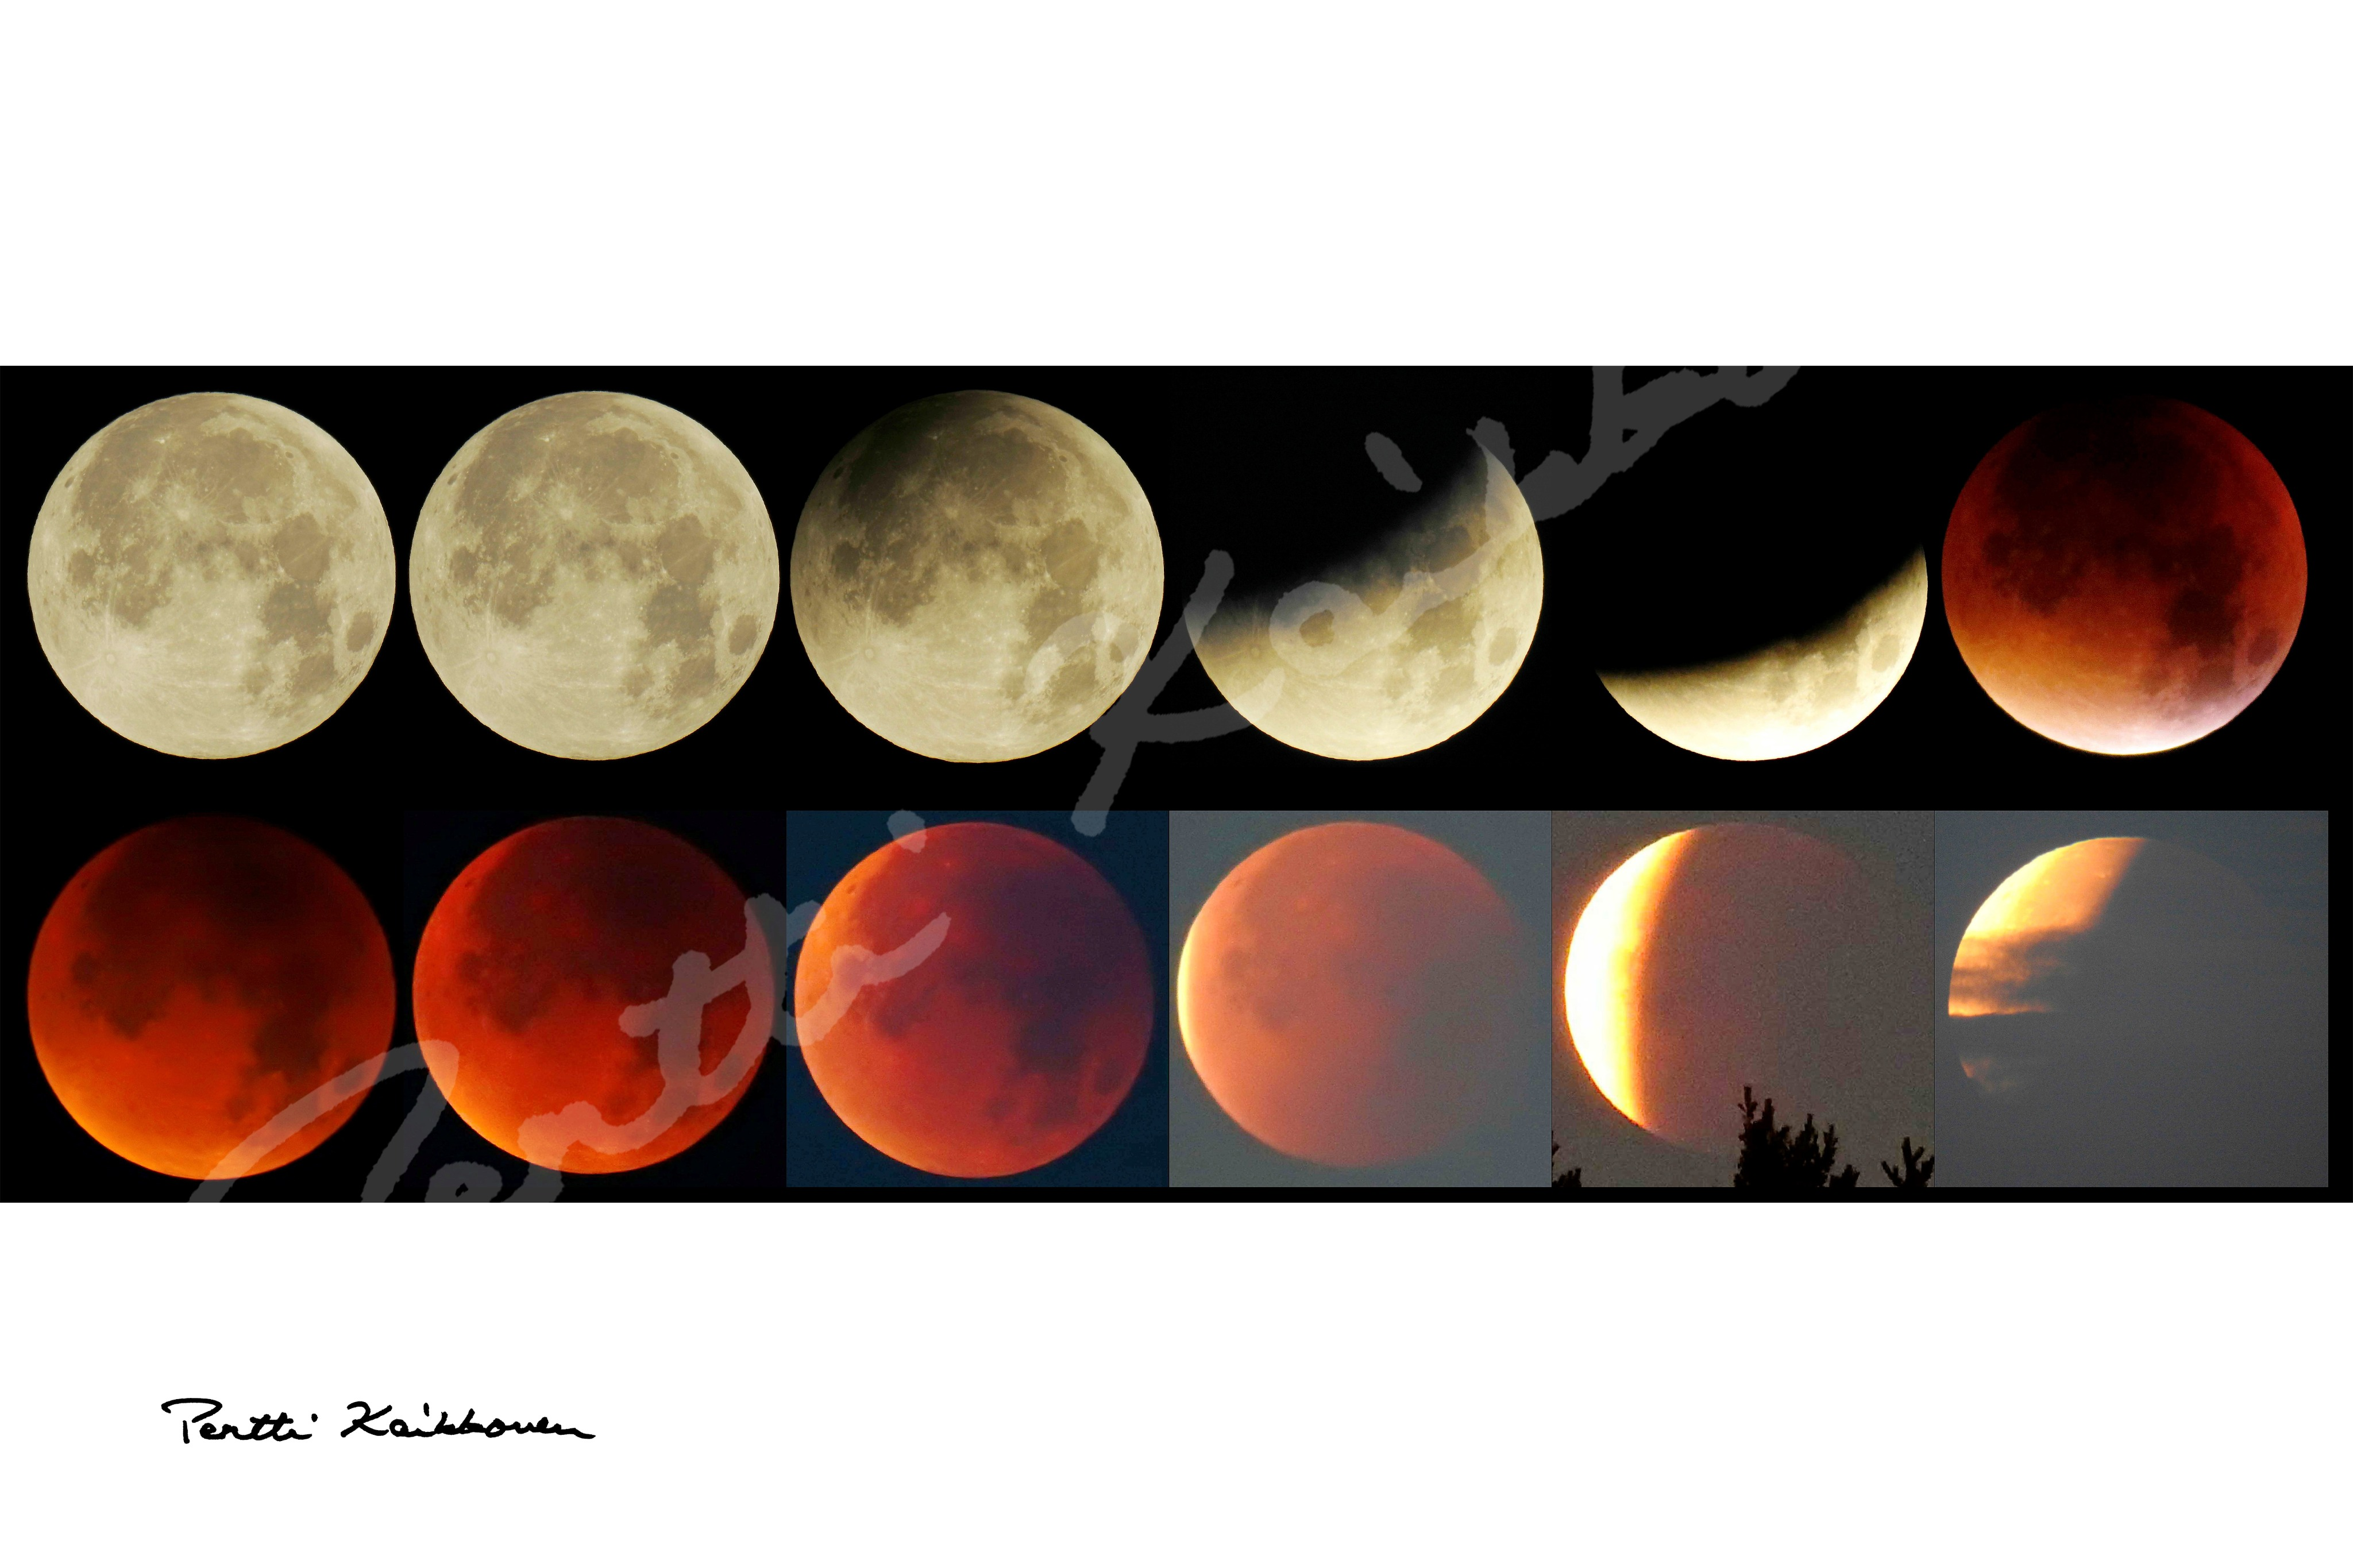 03. Kuunpimennys ja superkuu -The Supermoon Lunar Eclipse, kuvatiedostot - digital picture files